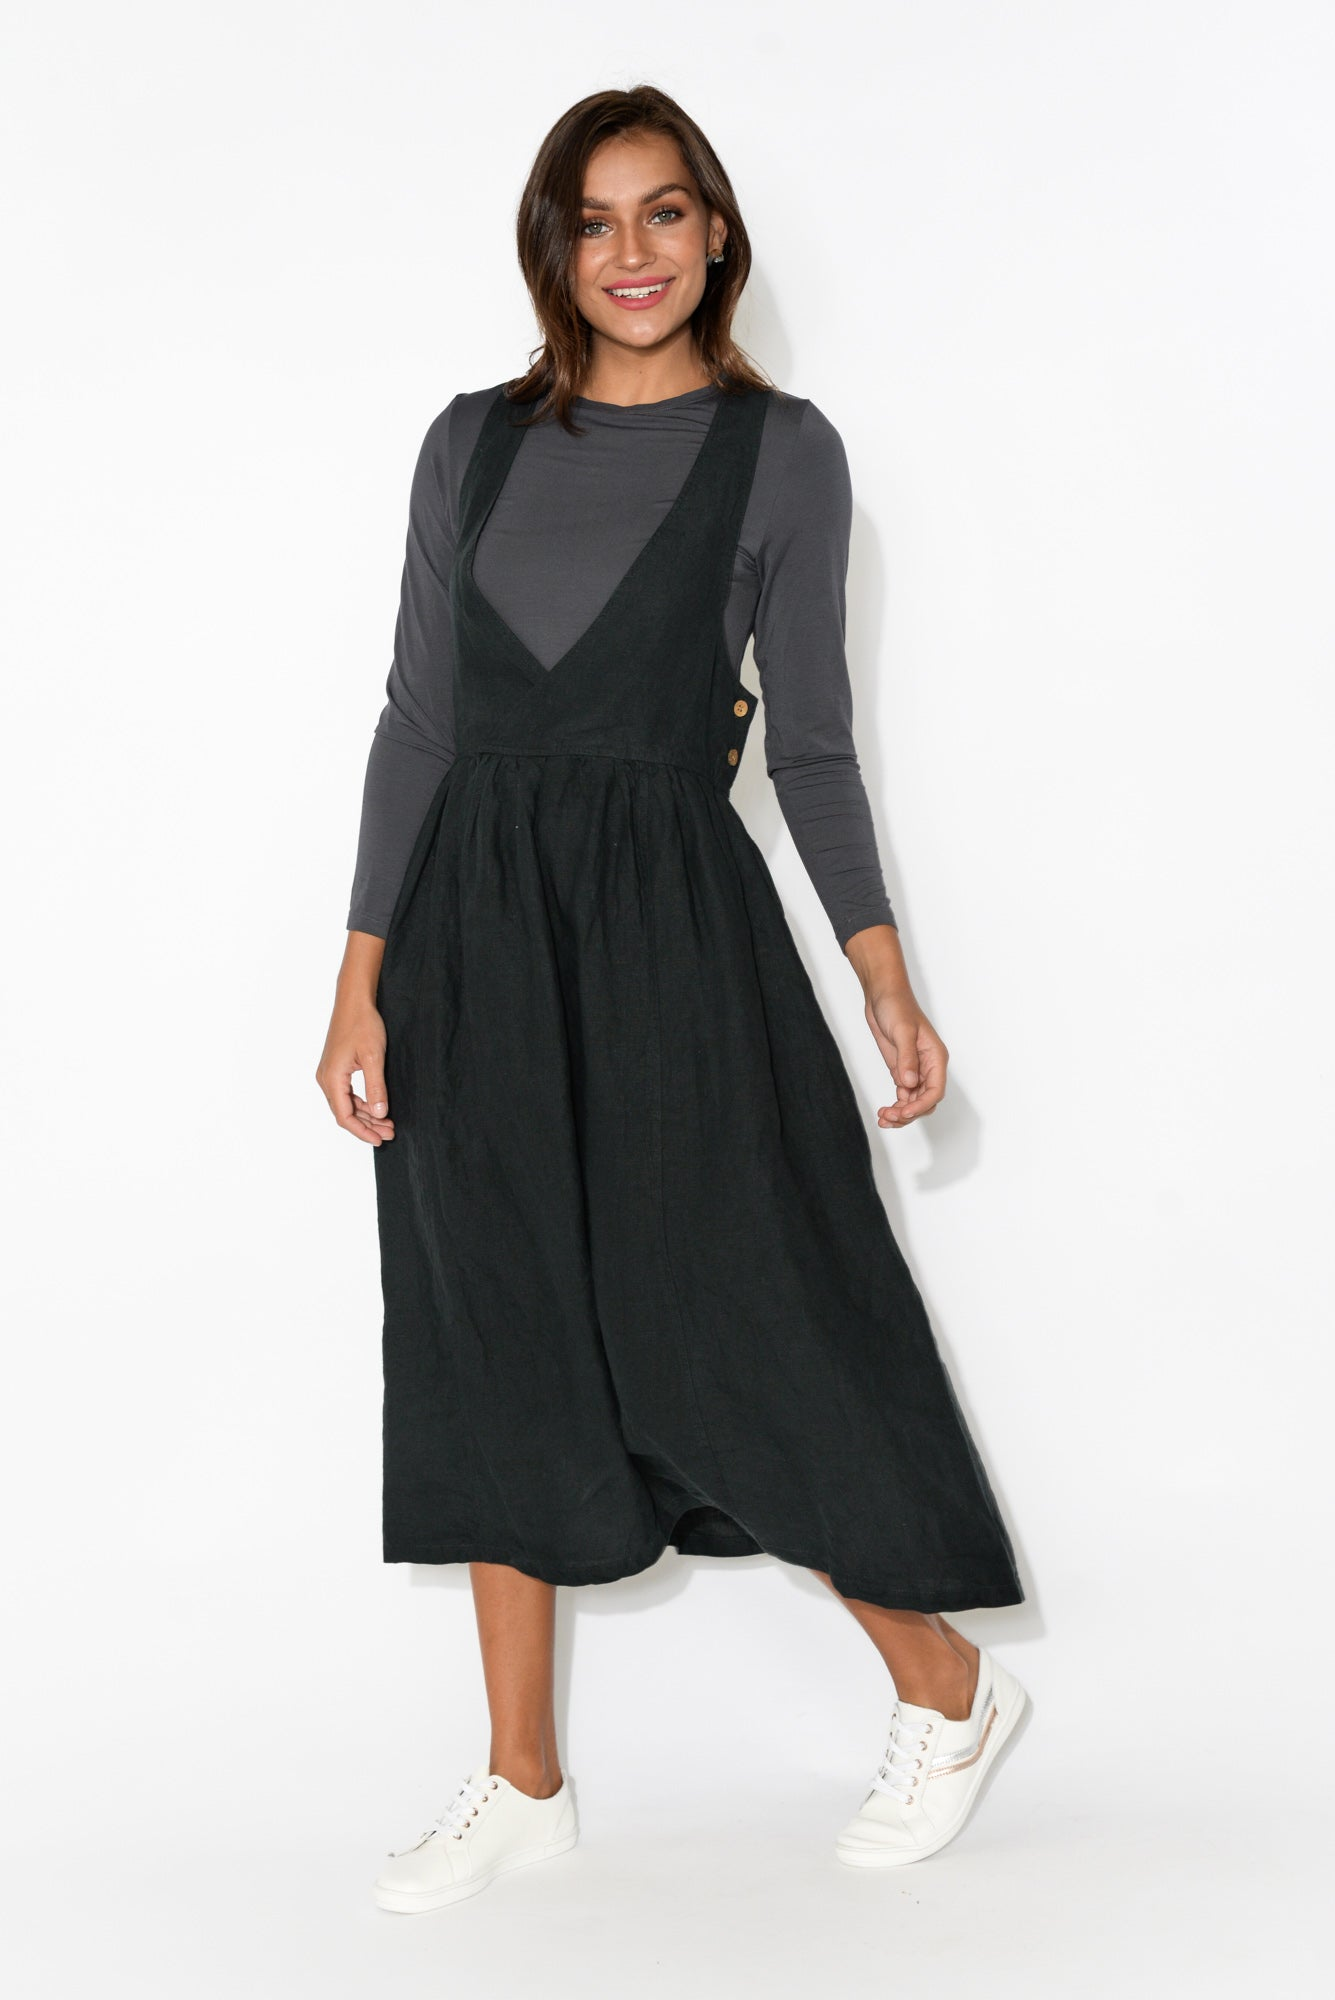 Callie Black Linen Pinafore Dress